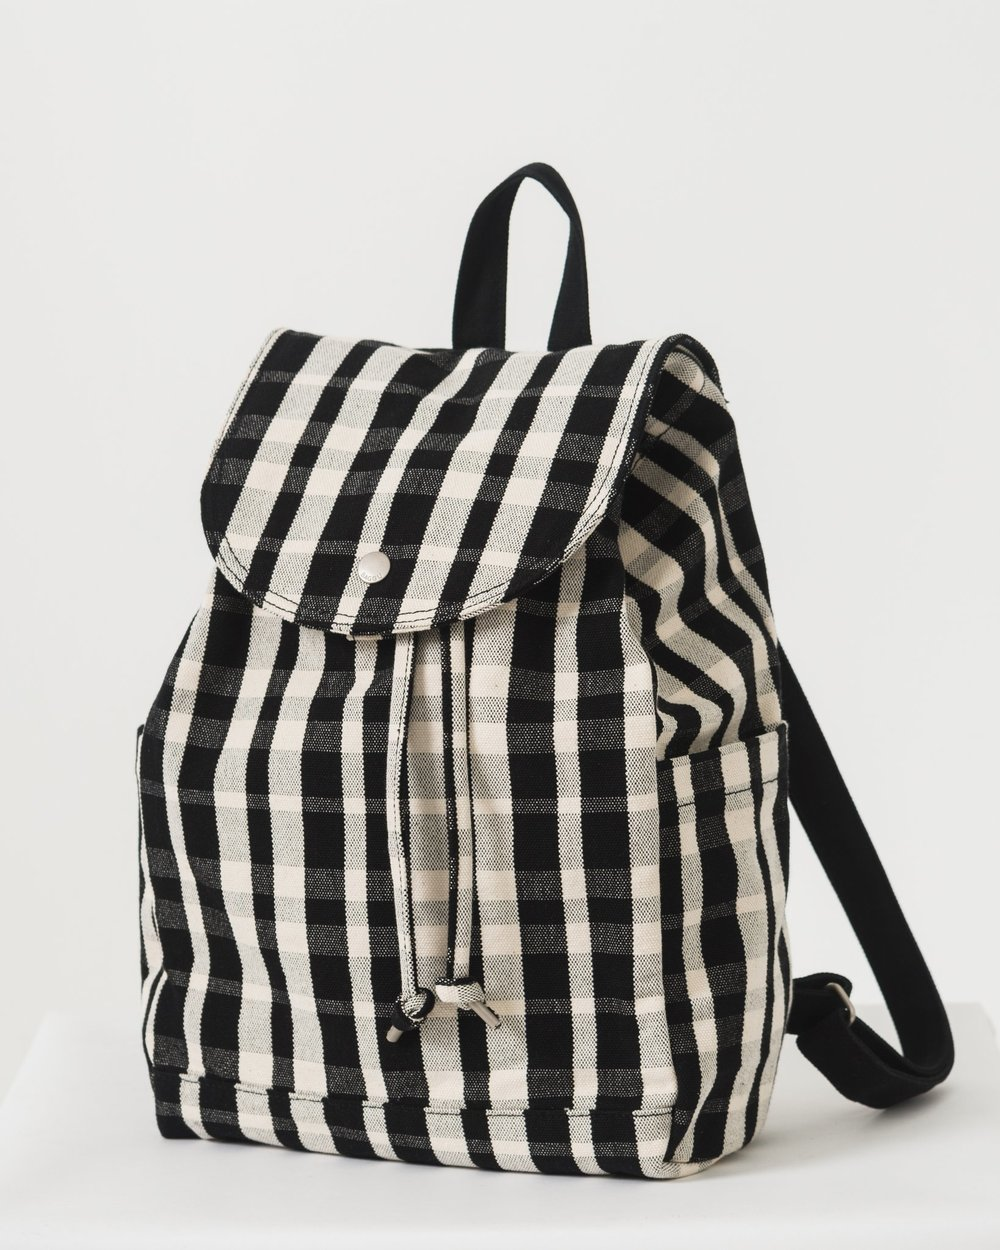 Drawstring_Backpack_16oz_Canvas_Plaid-01_2048x2048.jpg